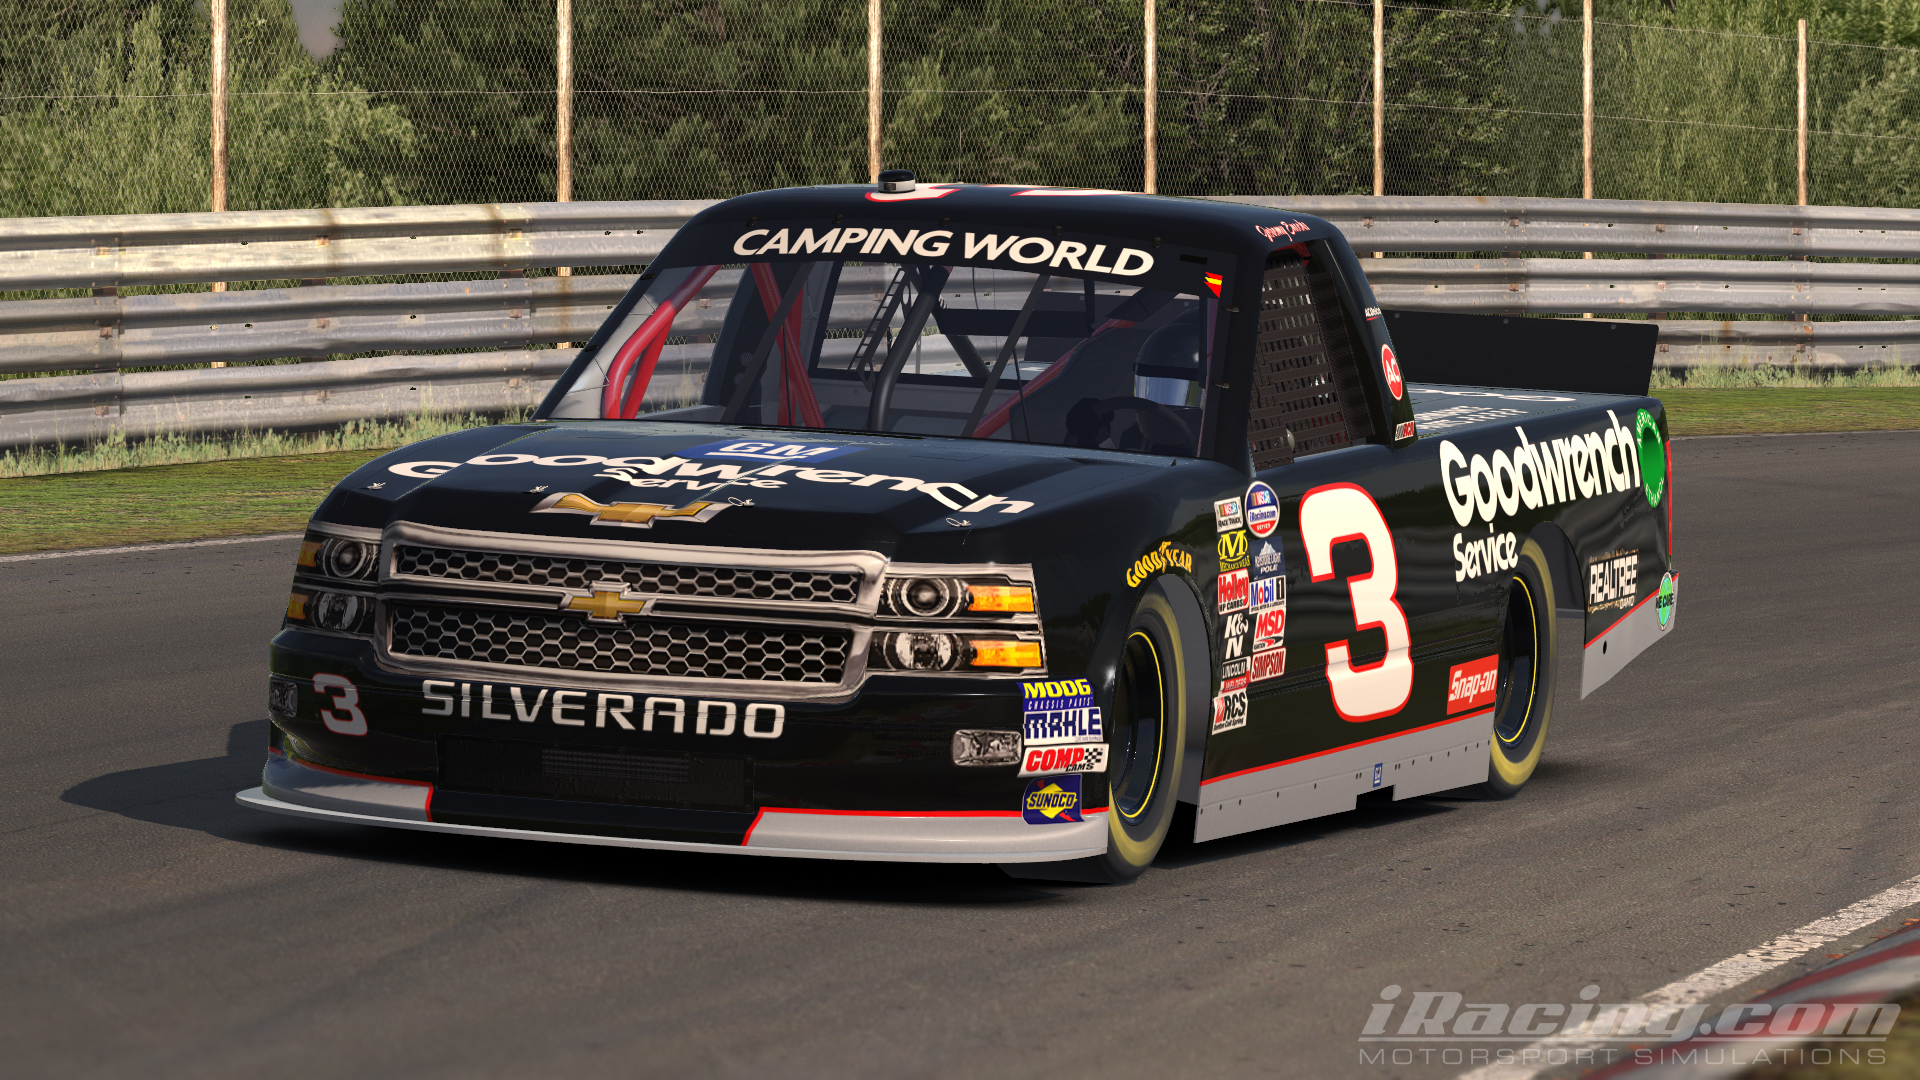 97 GM Goodwrench Truck by Jeremy E. - Trading Paints